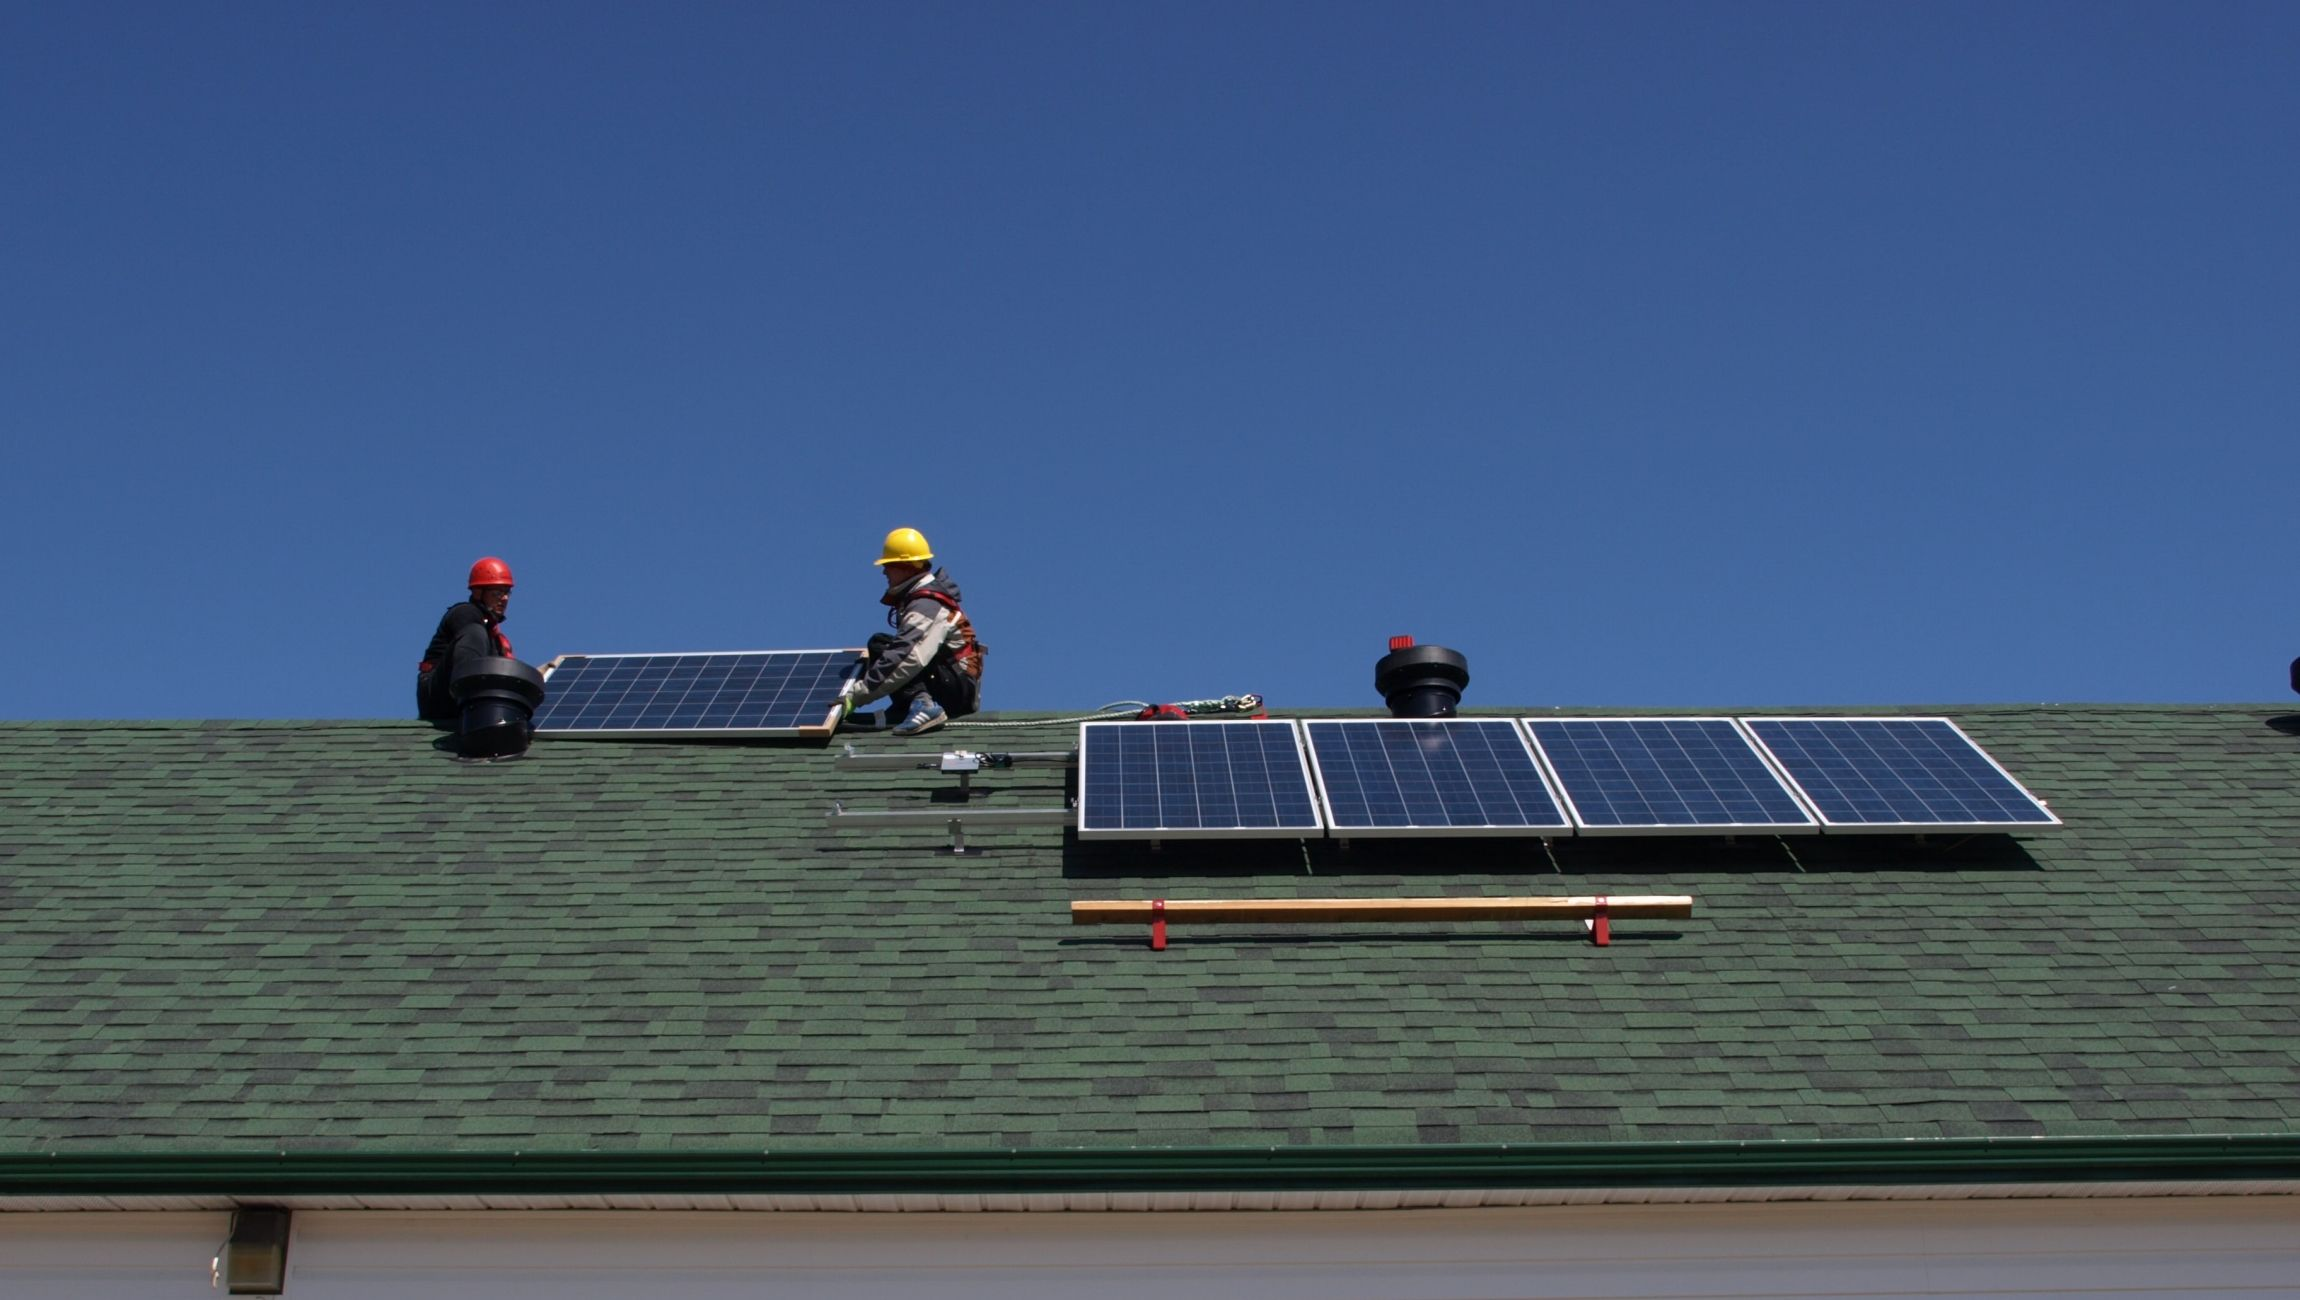 Carrying PV panels on a steep roof